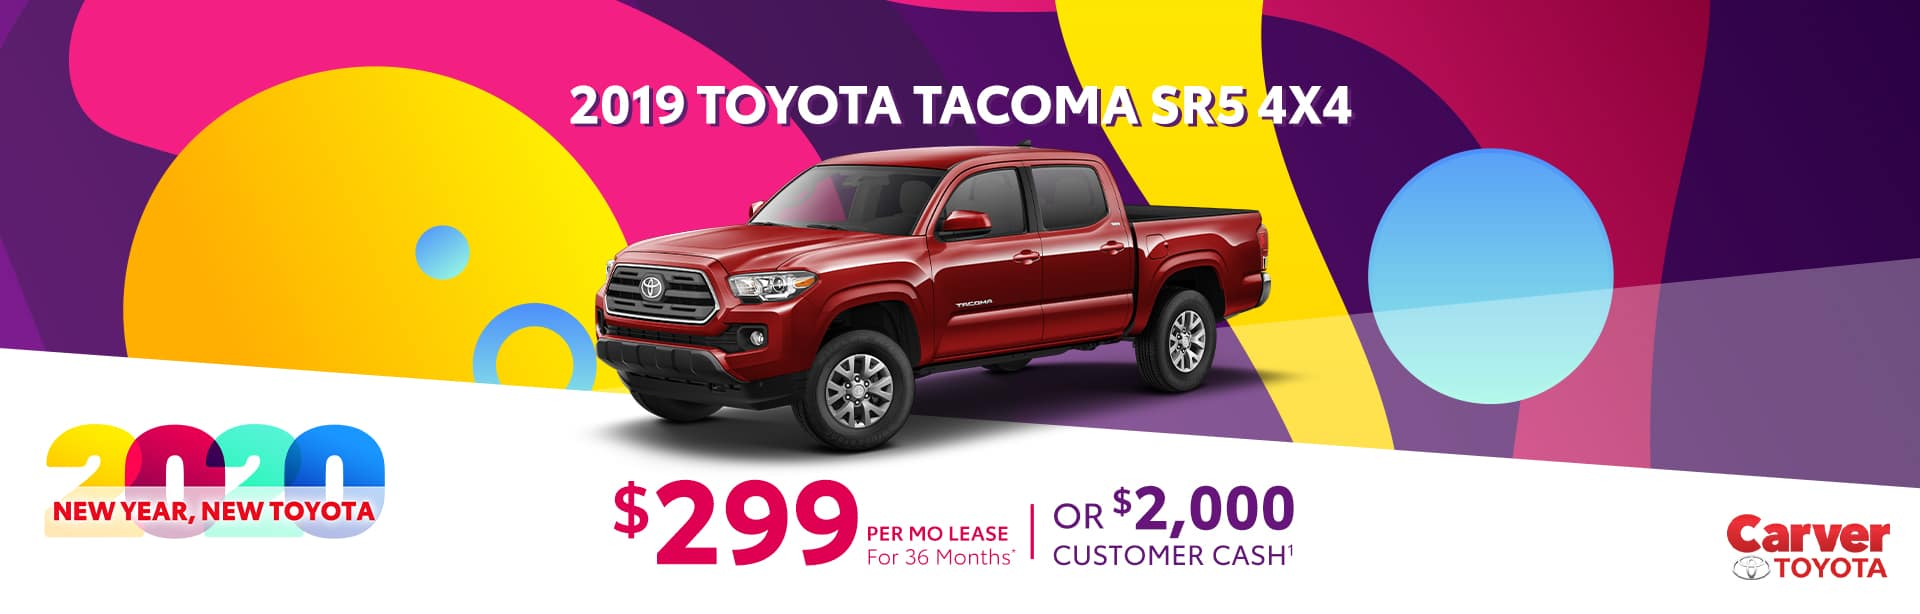 Only a $299 a month lease on a new Tacoma near Shelbyville, Indiana